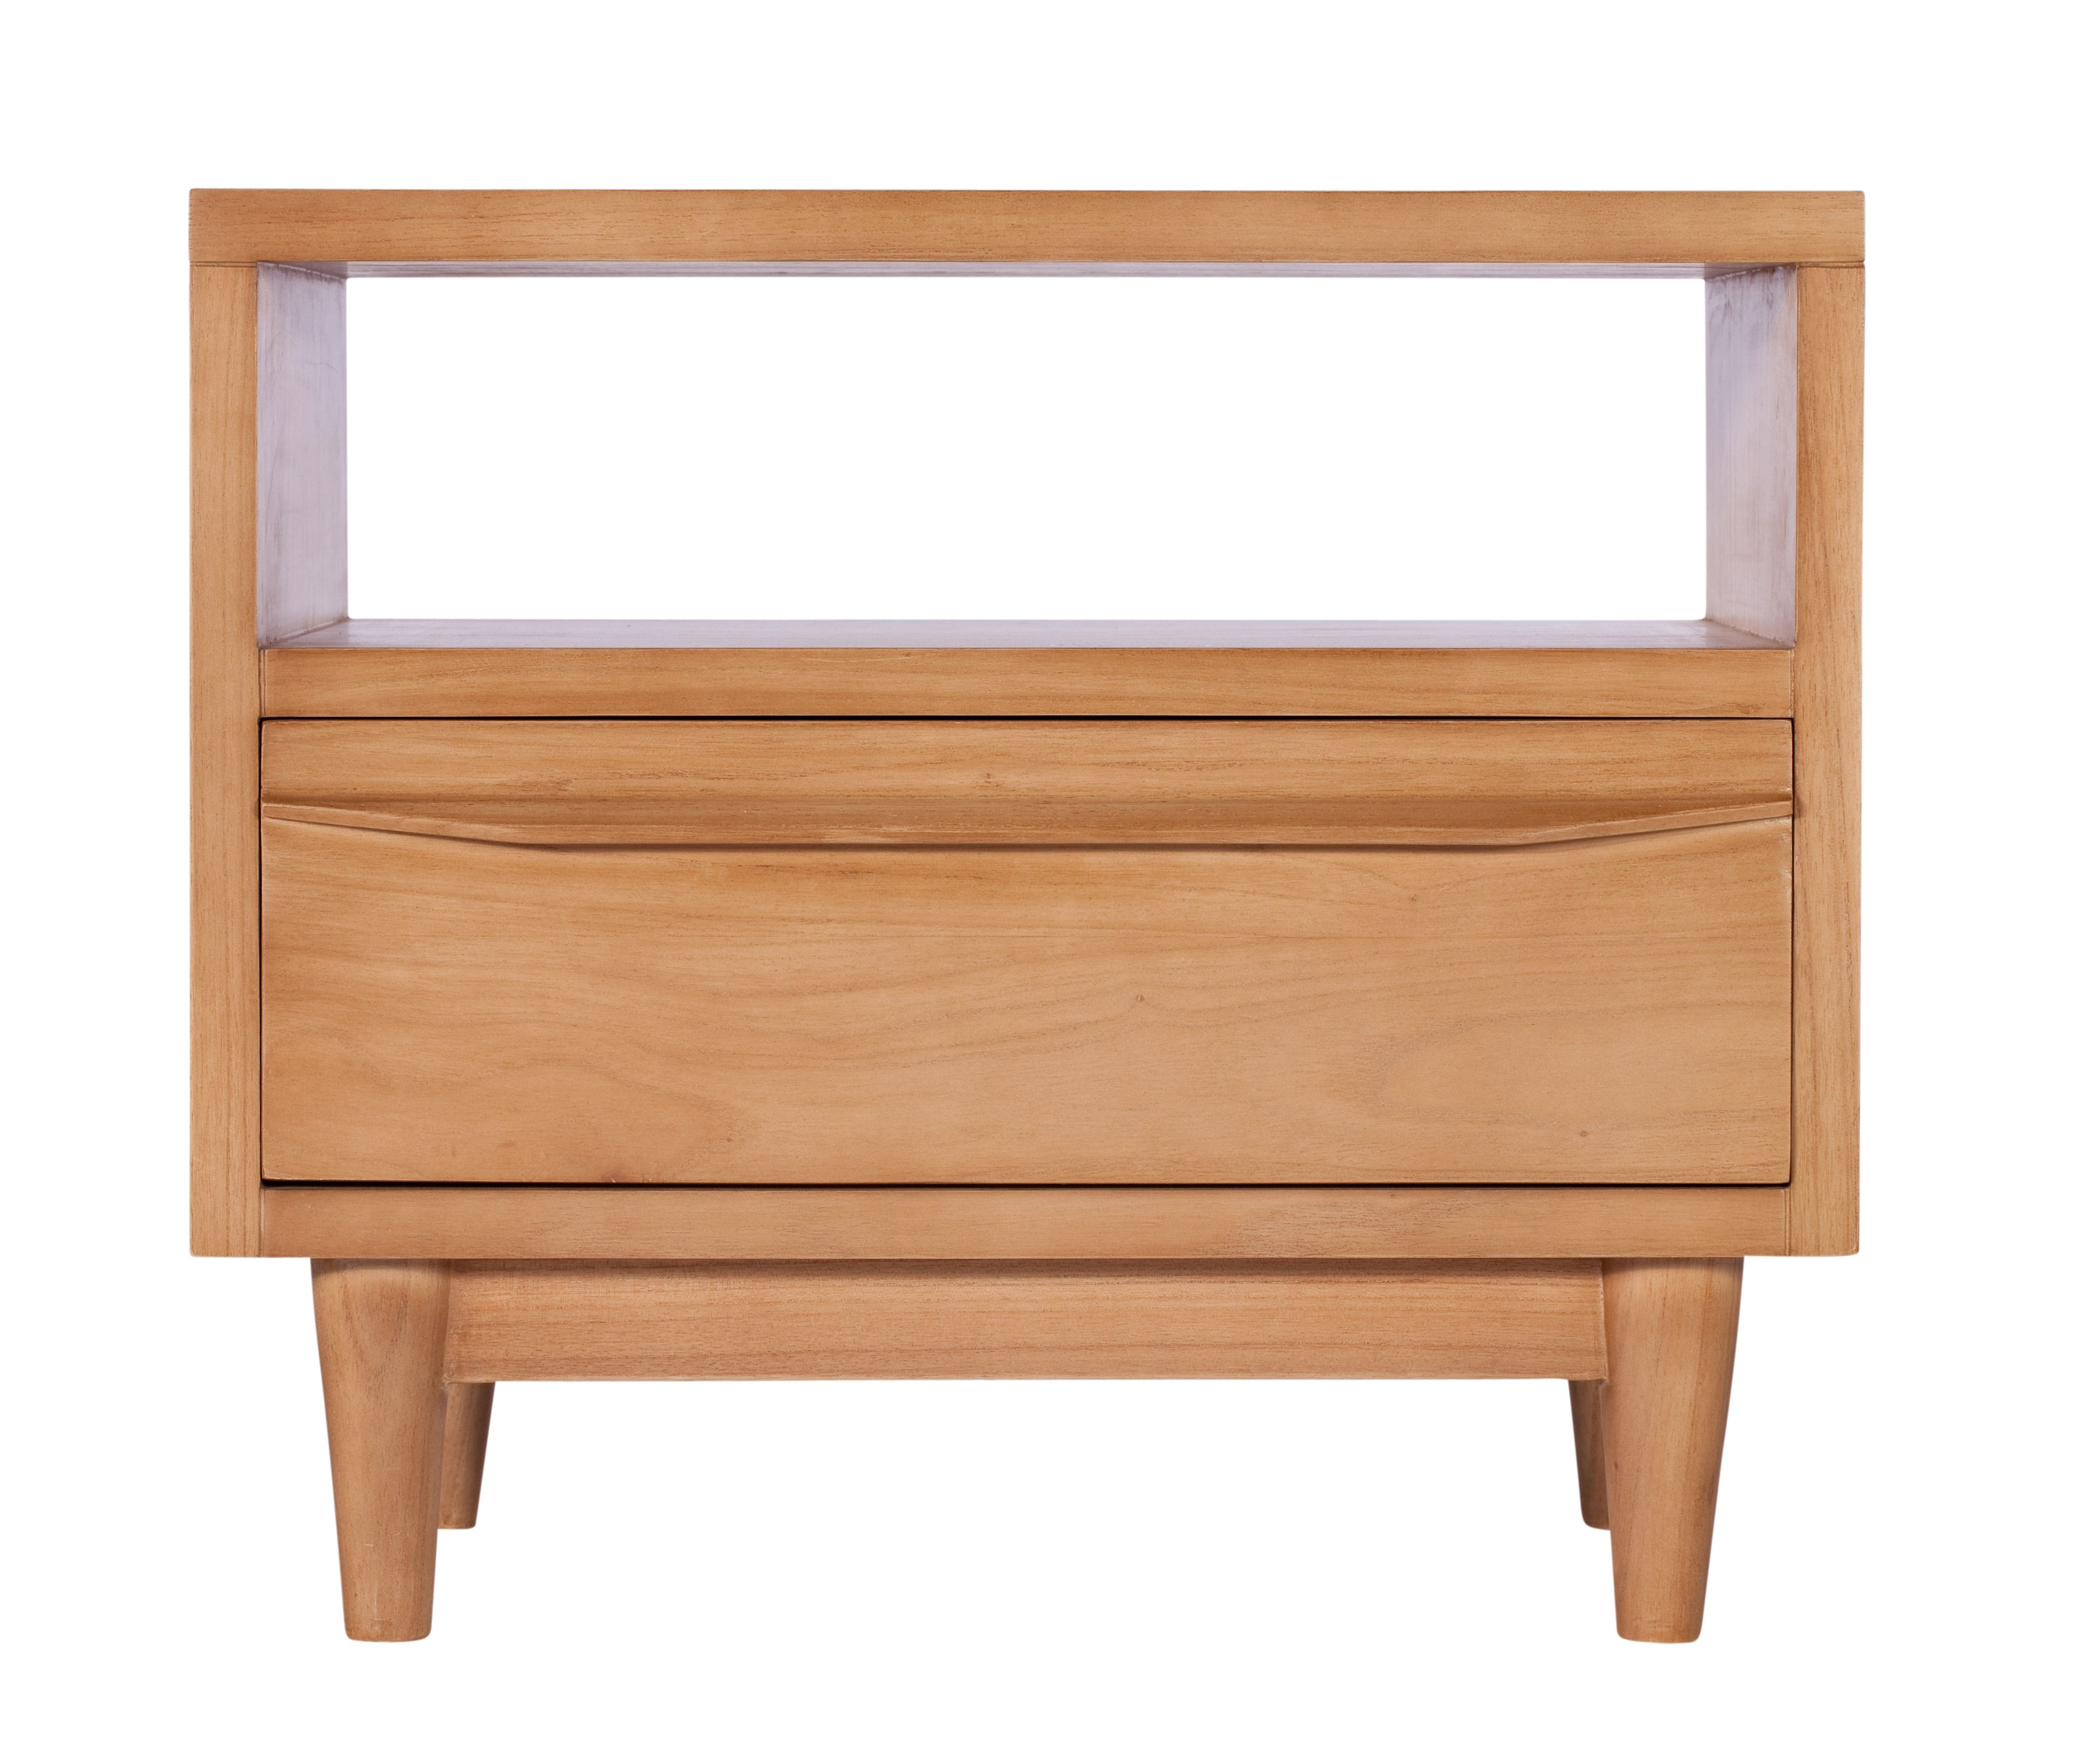 Sydney 1 drawer bedside table